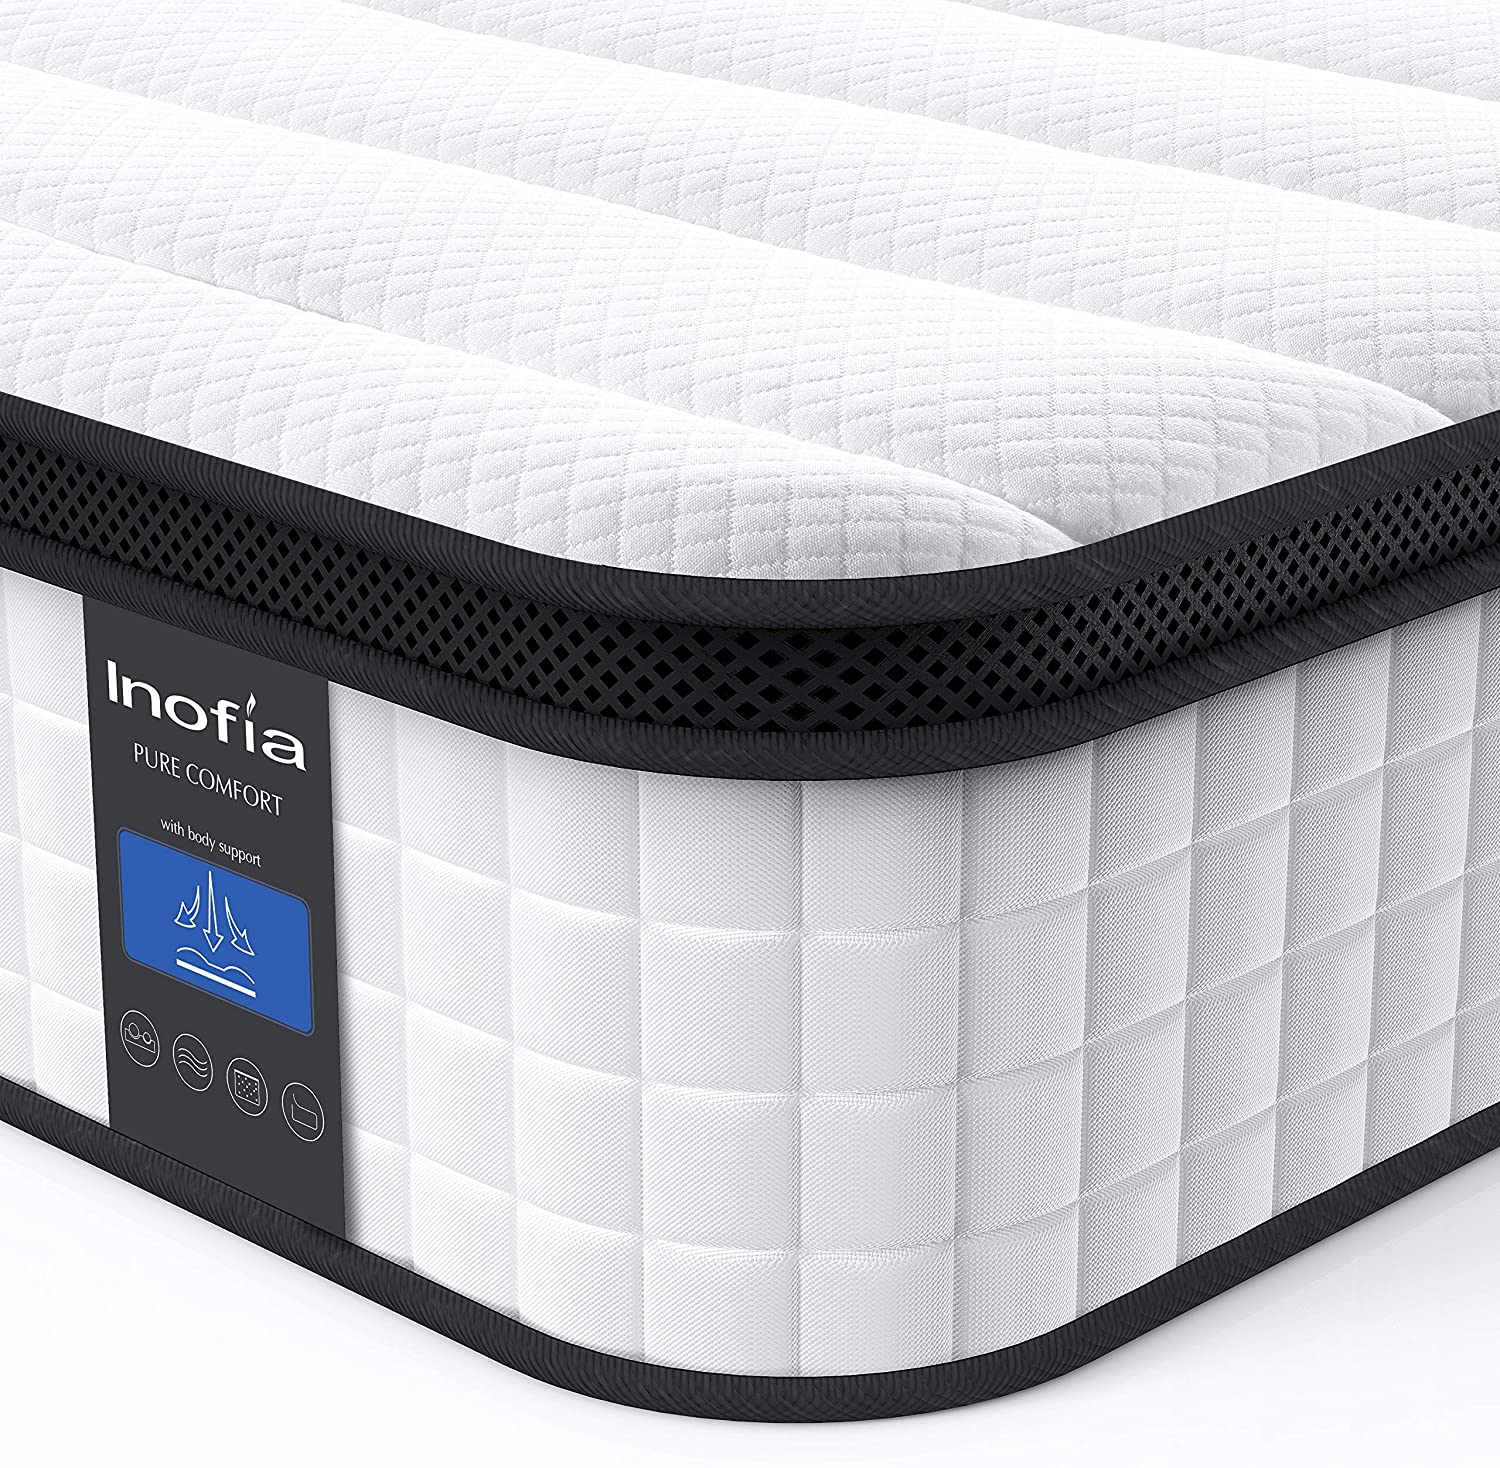 Inofia Breathable Innerspring Twin Hybrid Mattress